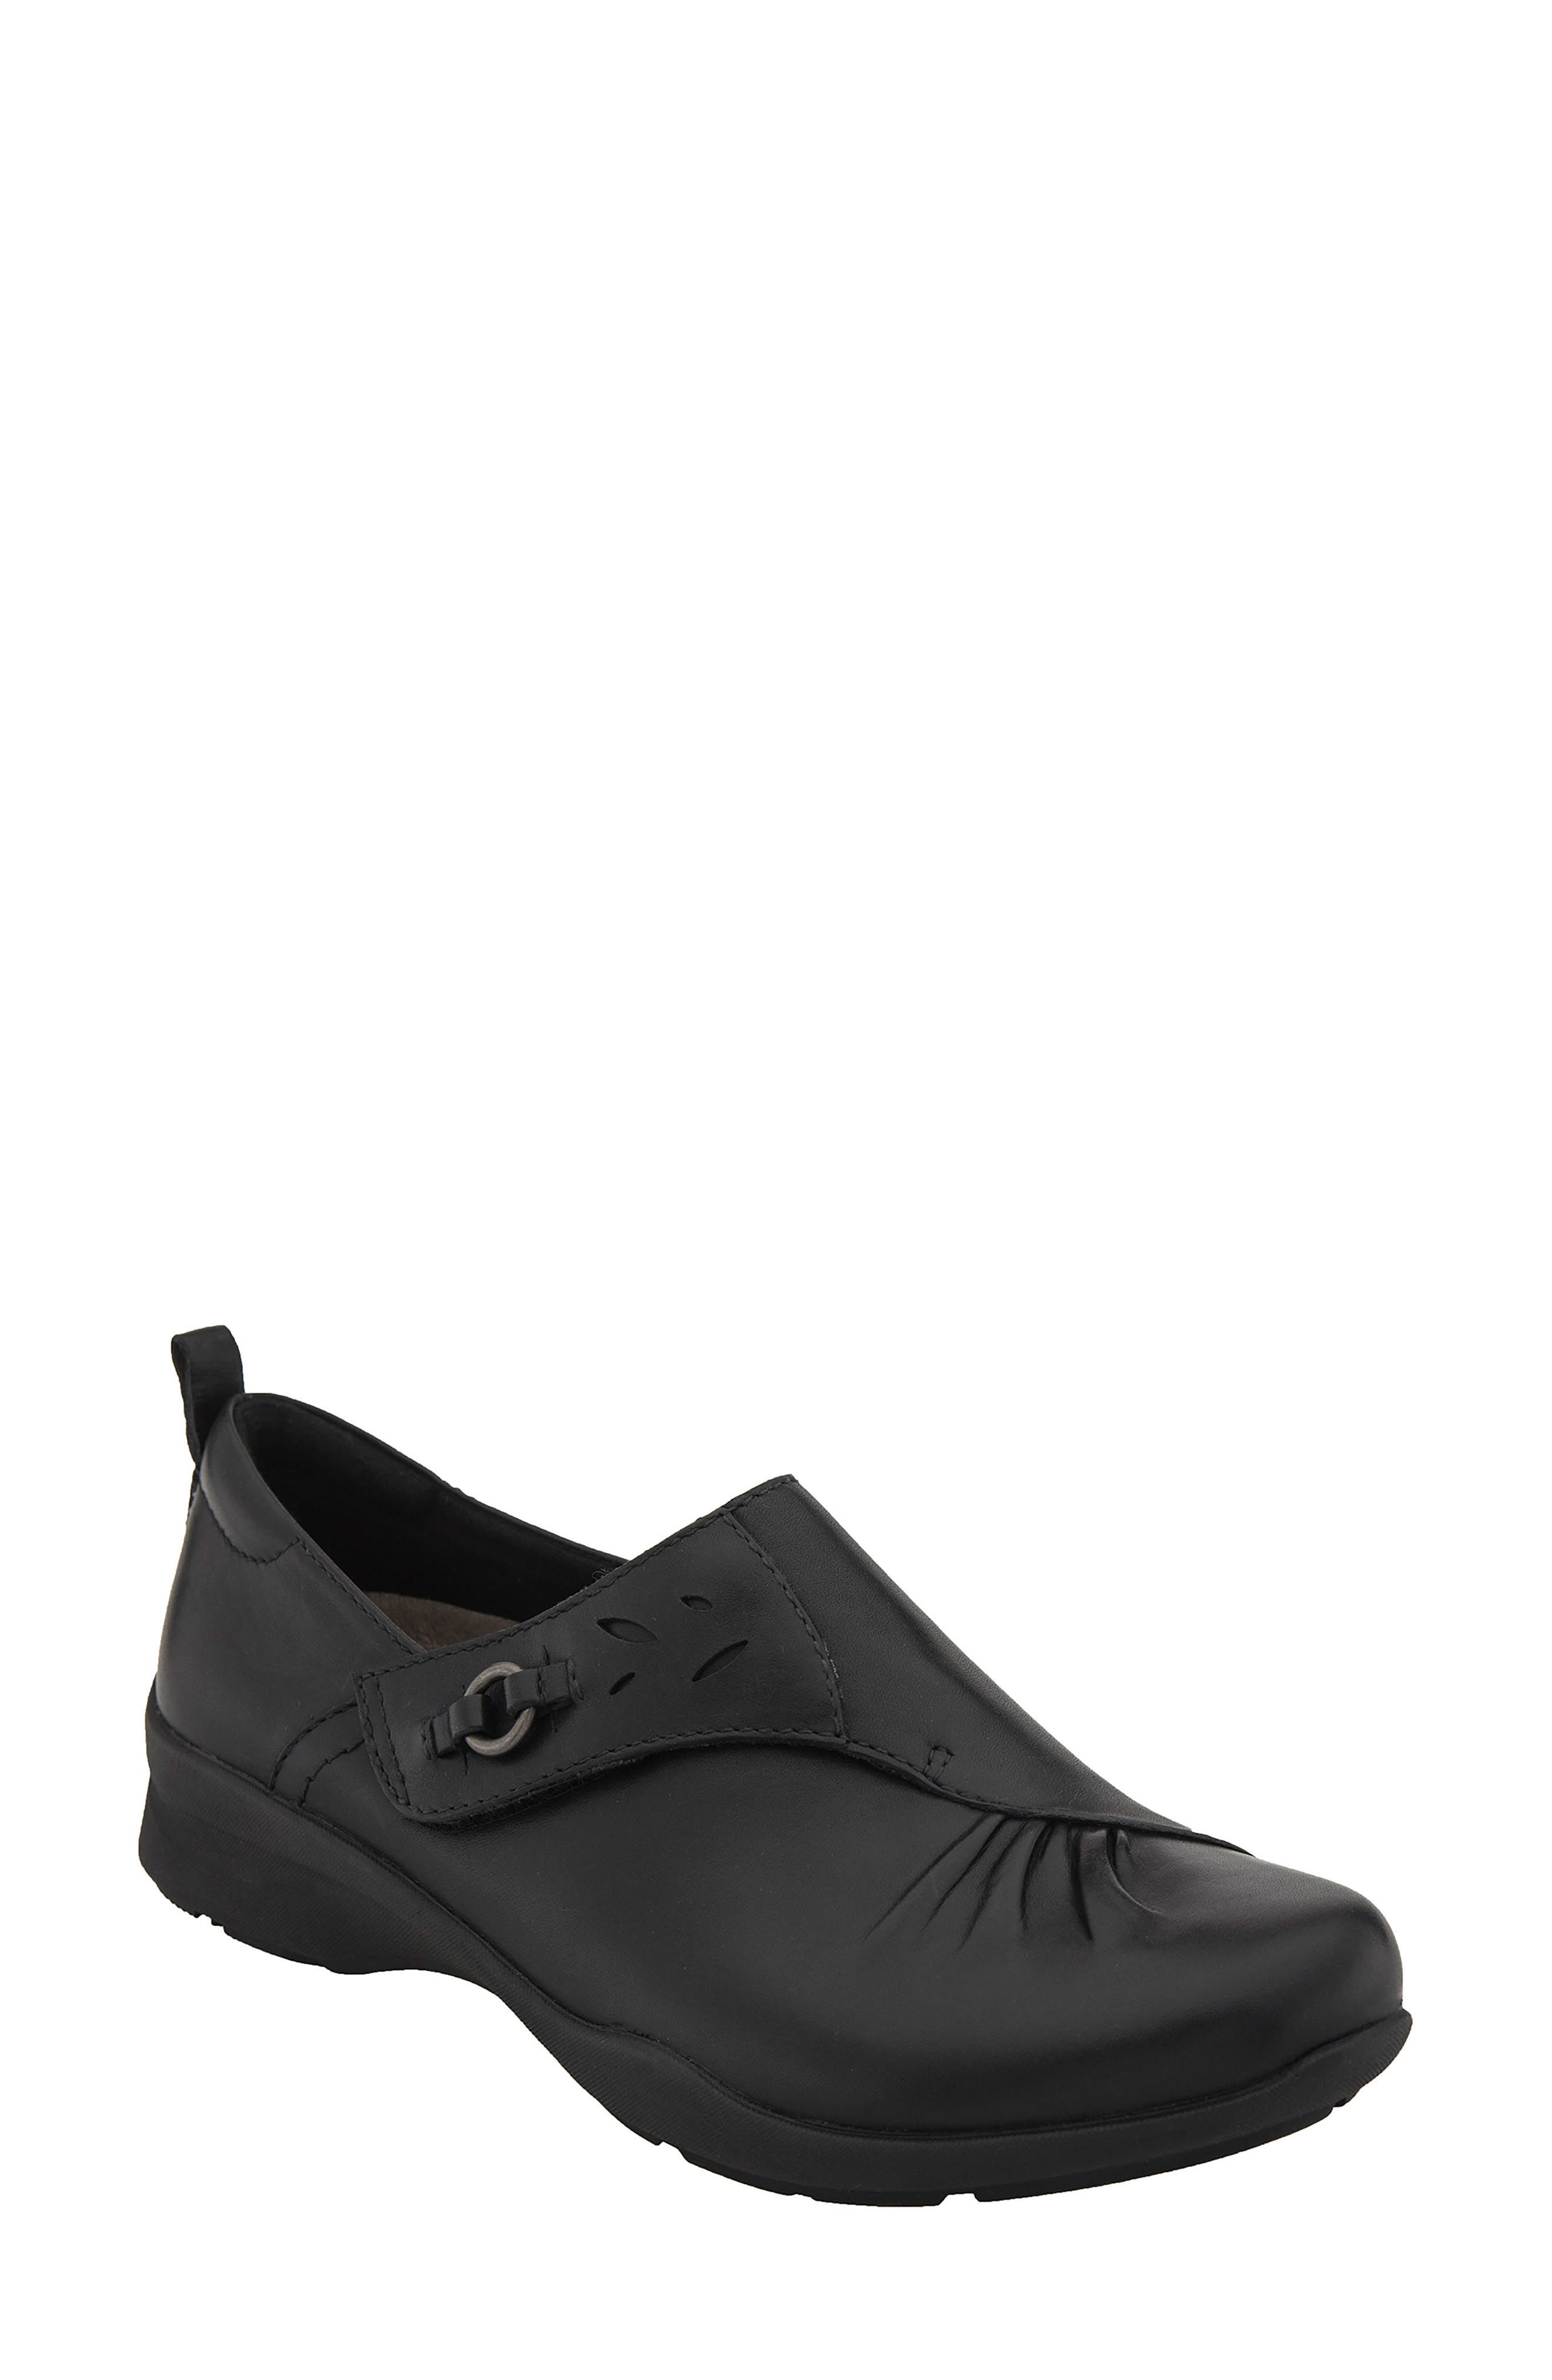 Alternate Image 1 Selected - Earth® Amity Loafer (Women)